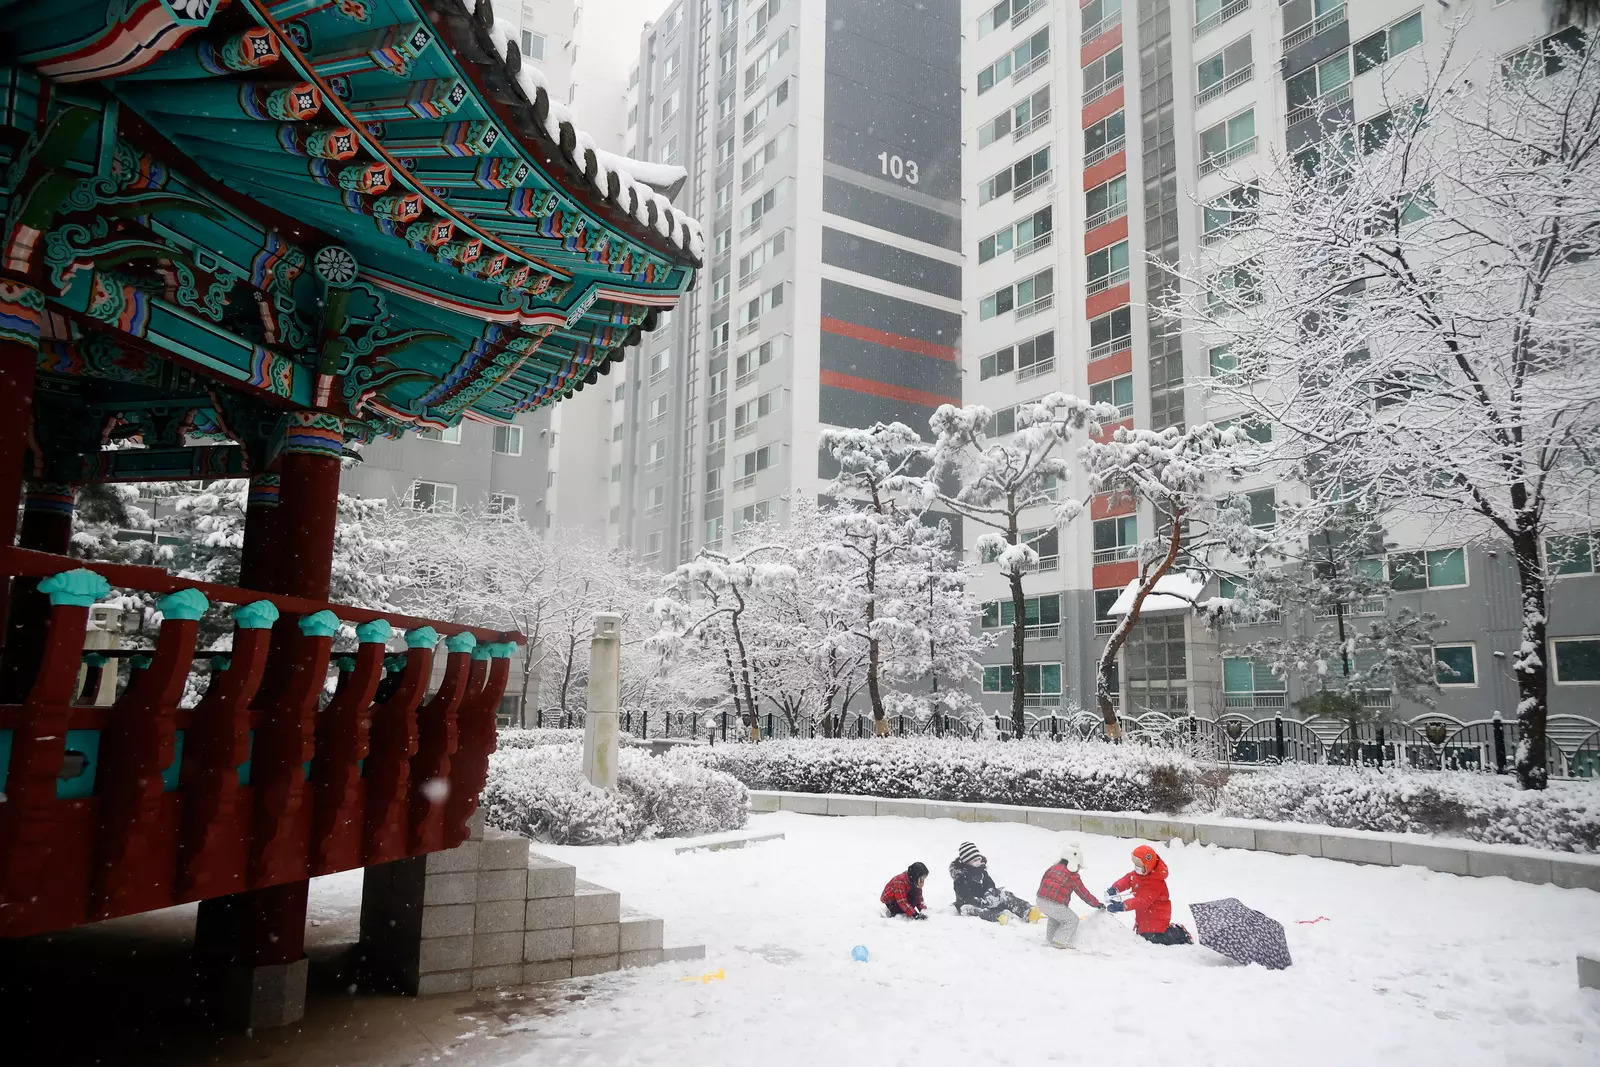 South Korea to boost Seoul housing supply by 10% to calm buying frenzy – ET RealEstate